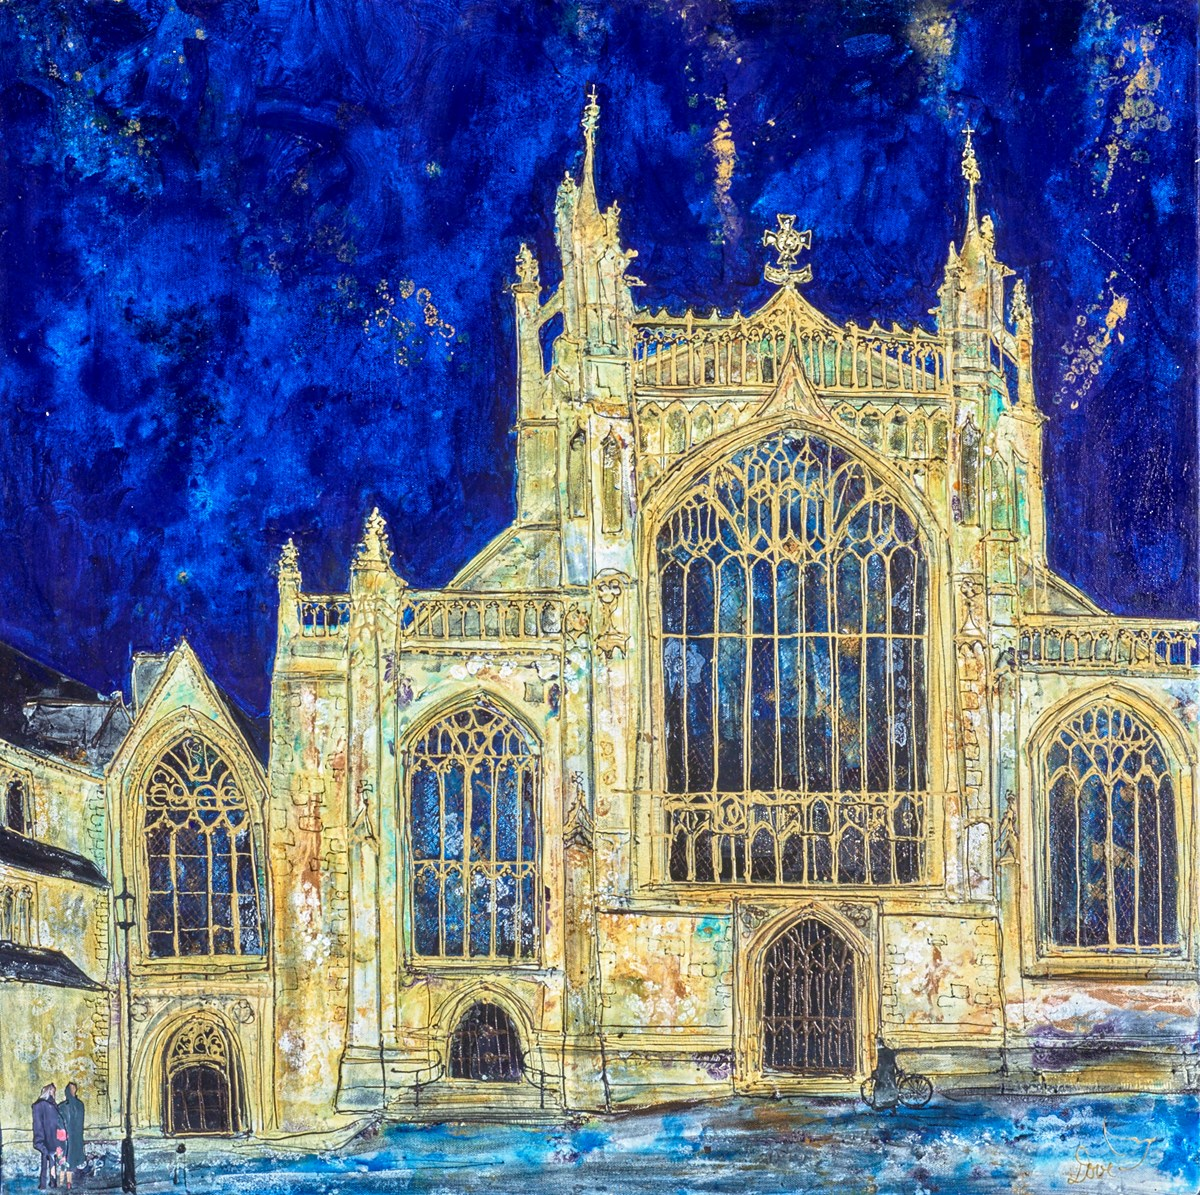 Behold the Cathedral and the Curate's Bike by katharine dove -  sized 32x32 inches. Available from Whitewall Galleries